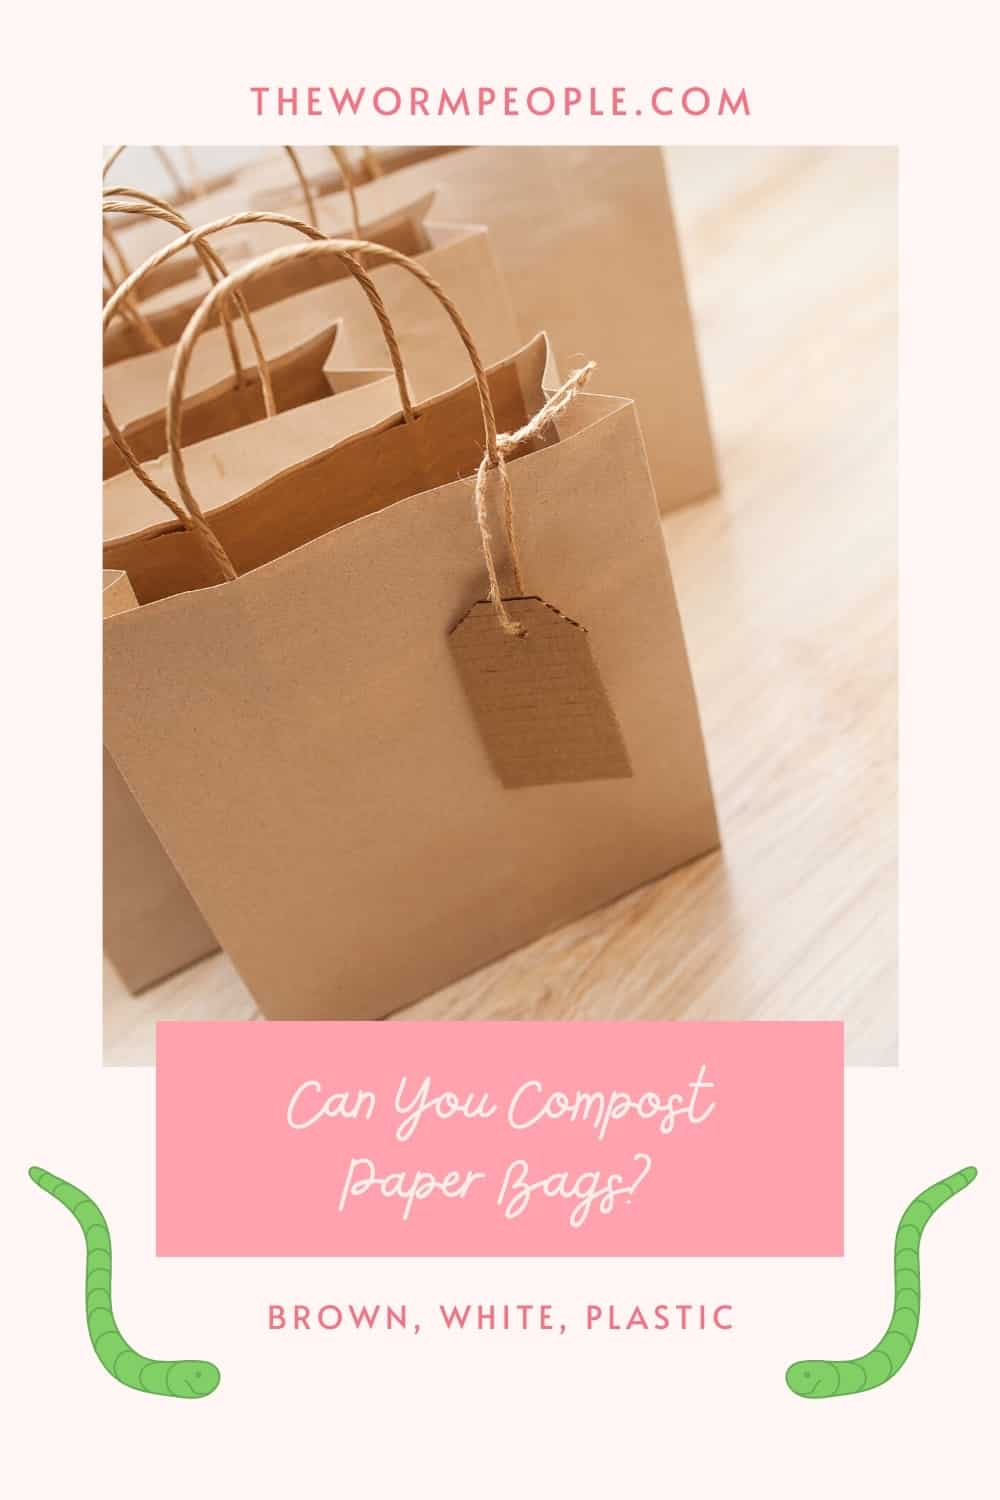 Can You Compost Paper Bags?